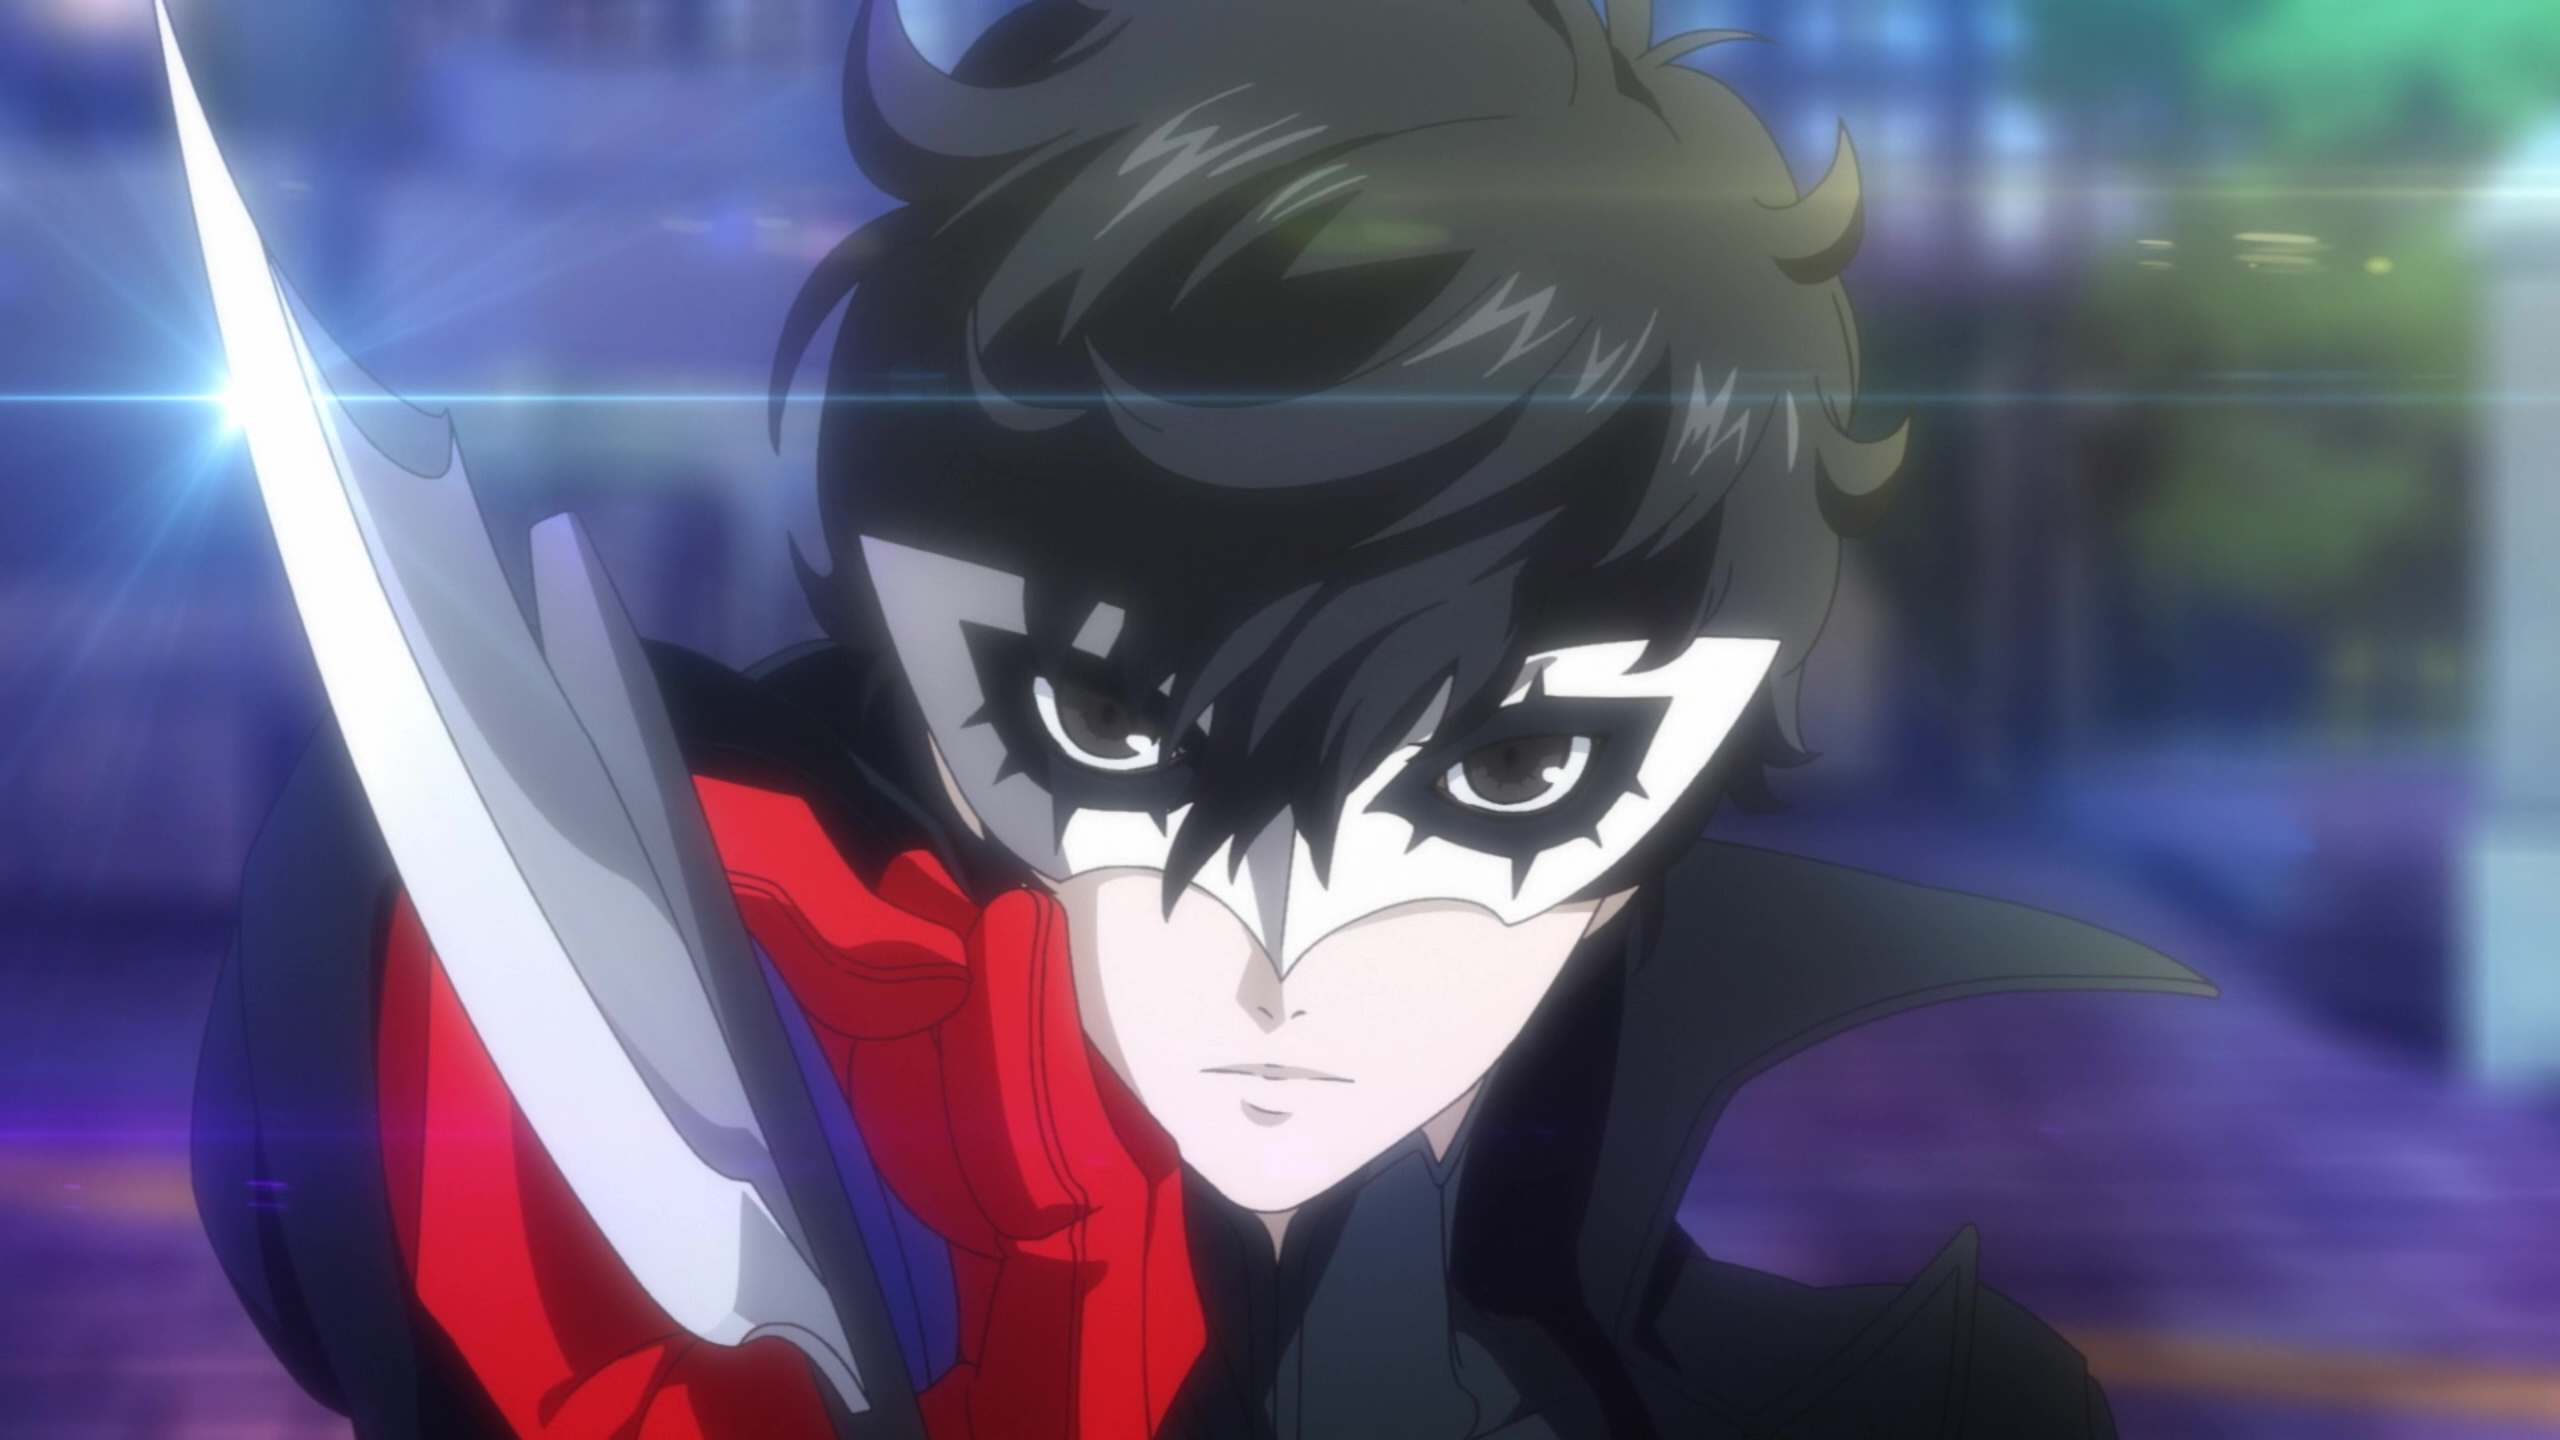 Persona 5 Strikers is a good port and legit sequel, but demands a PC version of Persona 5